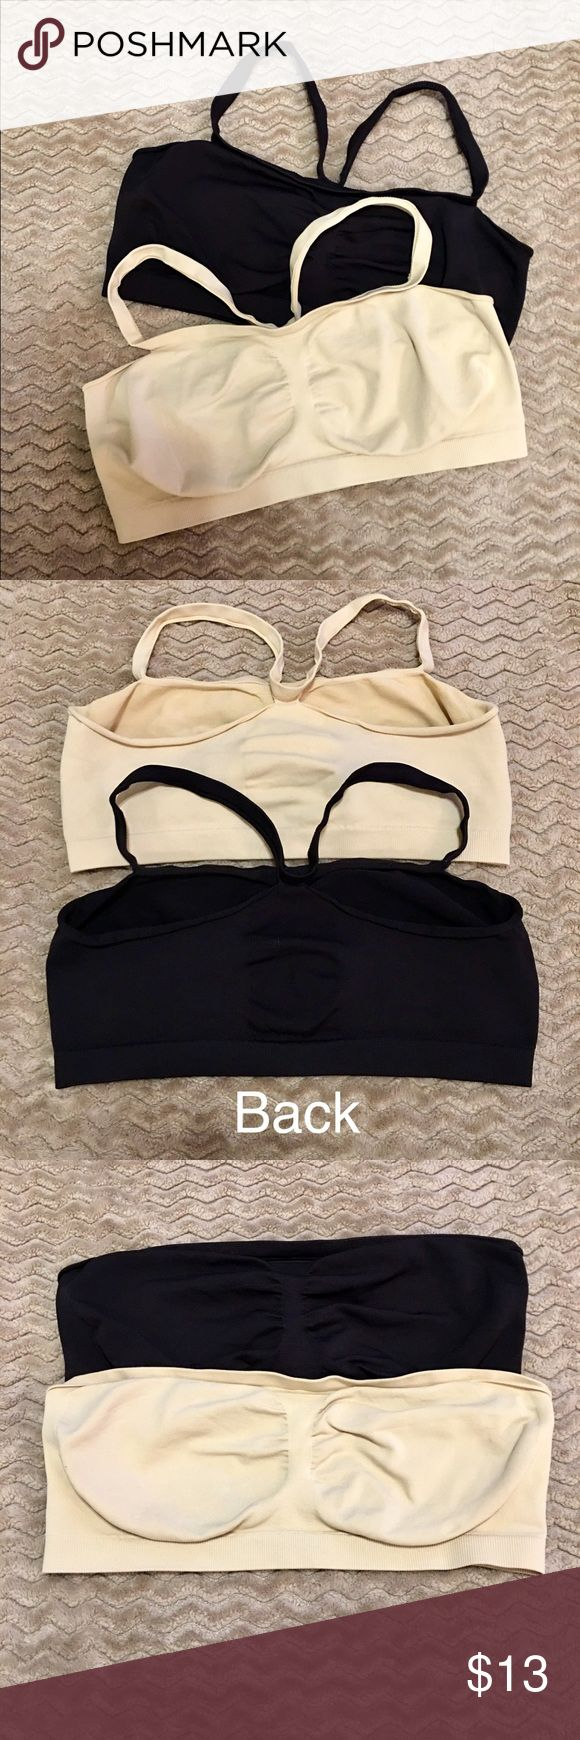 Barely There Customflex Fit Bandini- XL- set of 2 Set of 2–NWOT—SIZE- XL- Hanes Barely There Customflex Bra's. This multi-pack includes 2 seamless, soft-cup bras that are so cozy and comfy, they make perfect sleep bras as well as very comfortable everyday bras.  Stretch convertible shoulder straps Wire free 96% Nylon, 4% Spandex Totally seam-free styling and no irritating tags. shapes without poking or adding bulk for the ultimate in comfort. Over 10 different ways to wear it. ultimate…